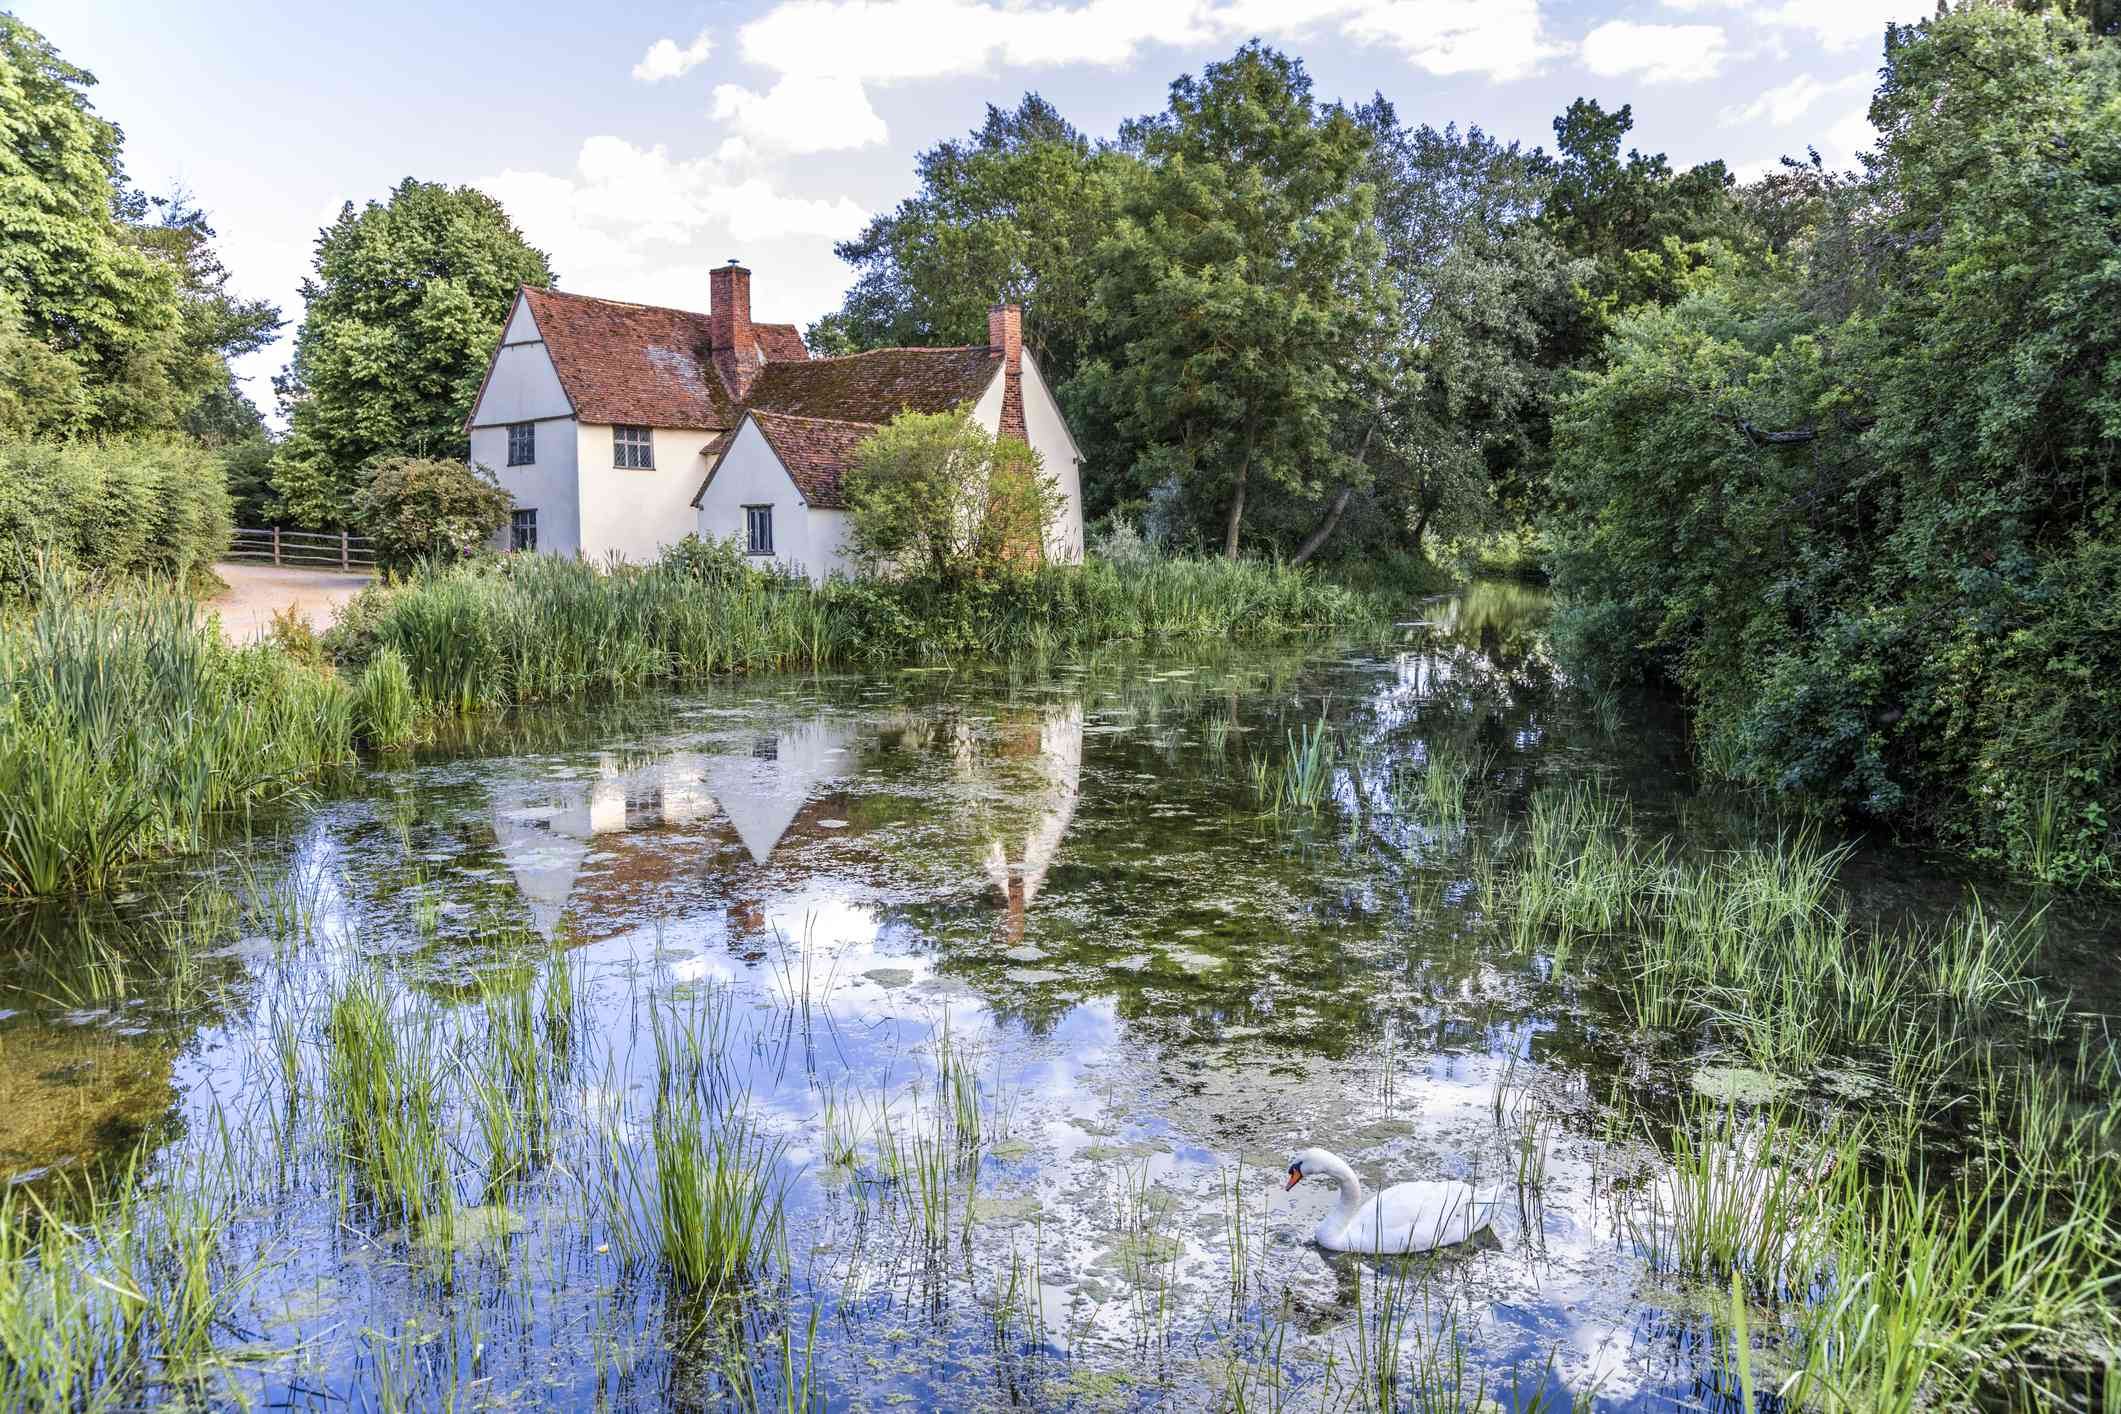 Willy Lotts House (Willy Lotts Cottage) beside the River Stour at Flatford Mill